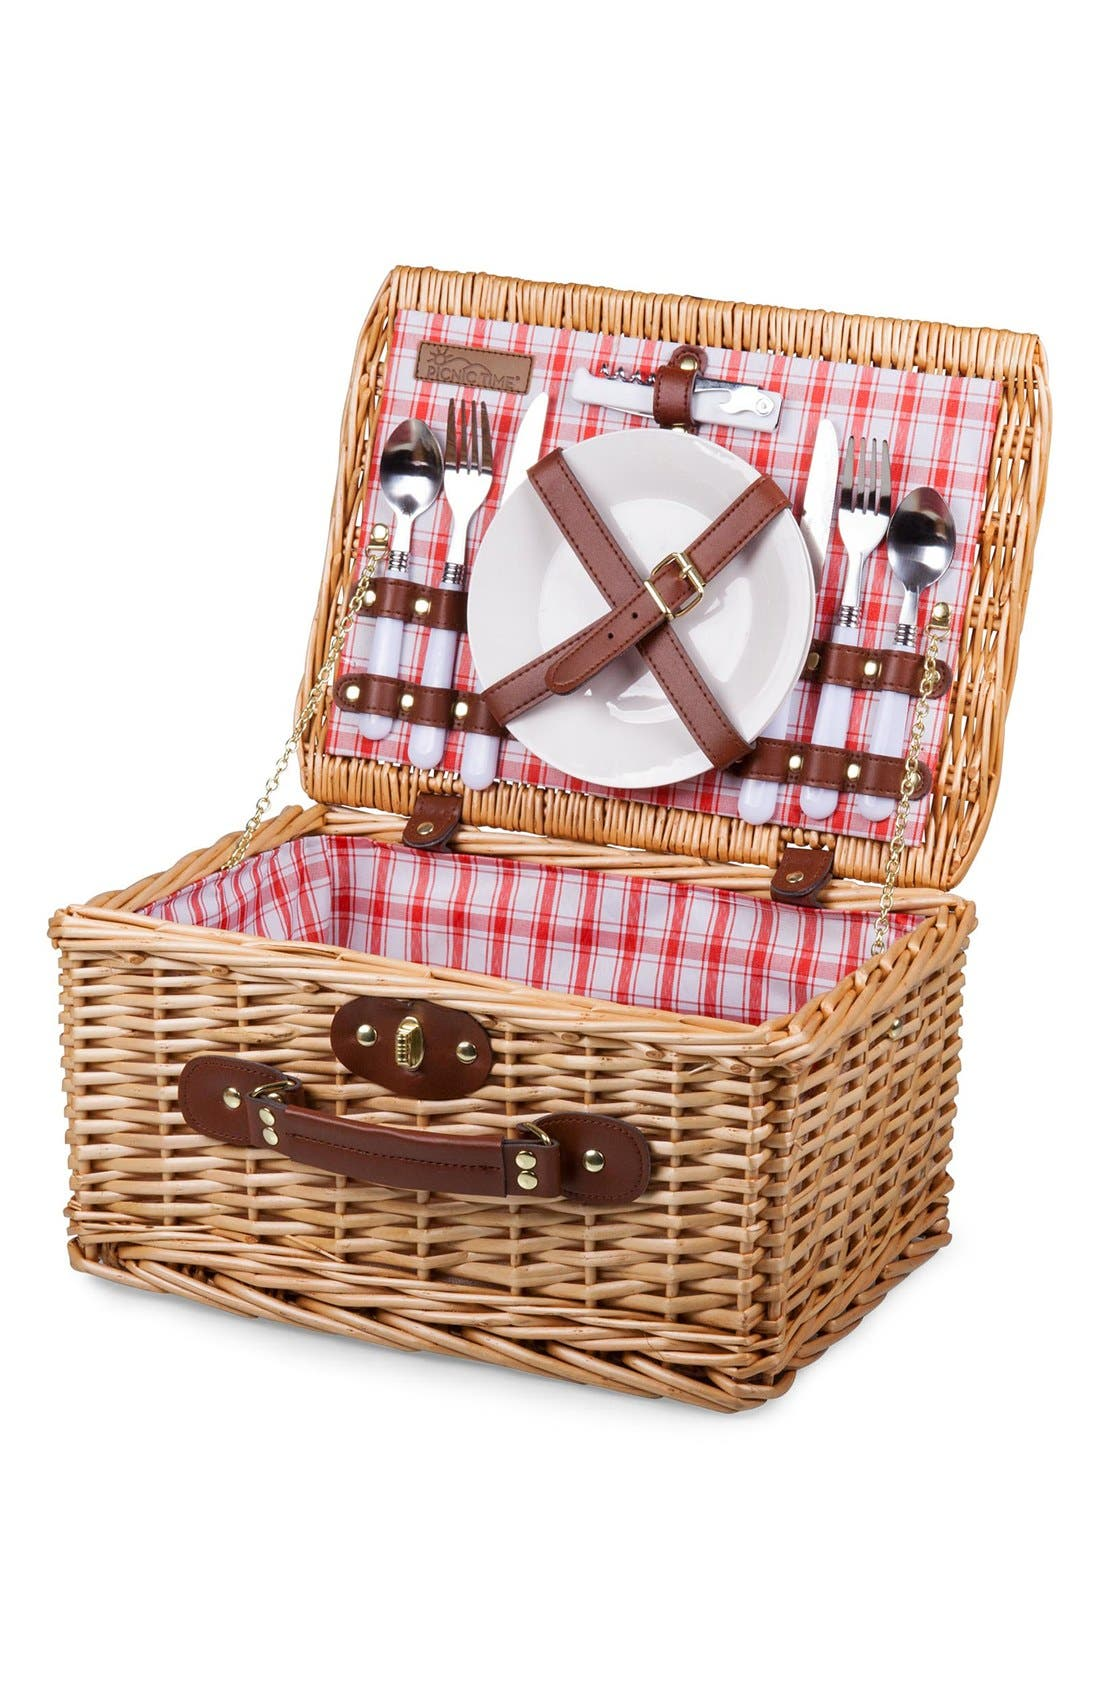 'Catalina' Wicker Picnic Basket,                             Alternate thumbnail 3, color,                             Red